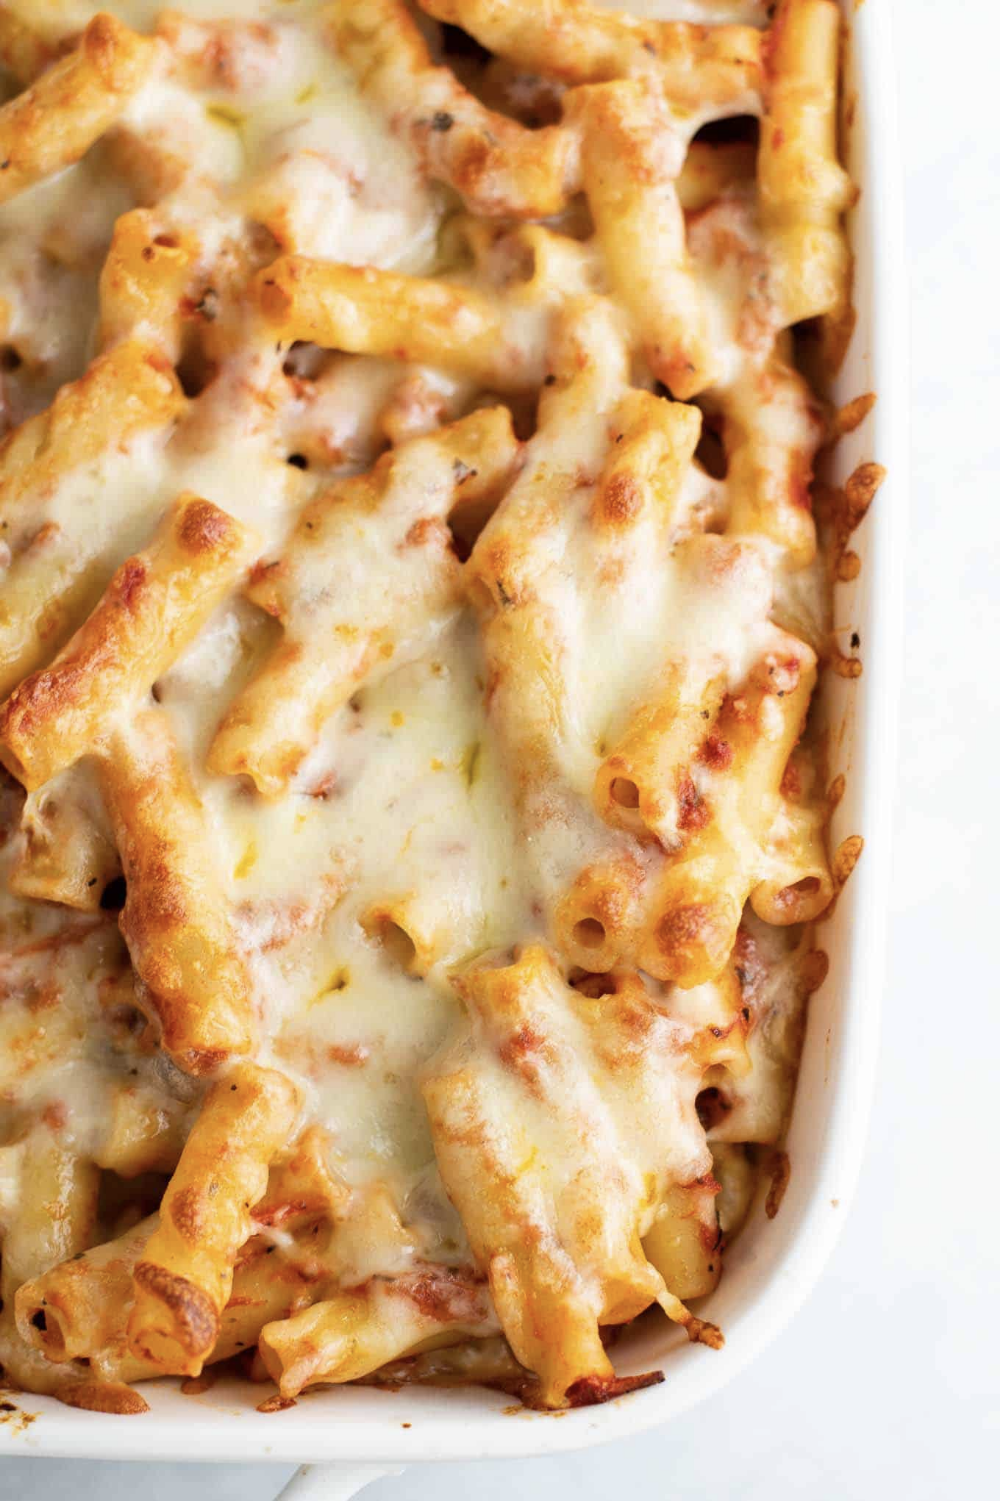 Super Easy Three Cheese Baked Ziti Is A Meatless Dinner Recipe That Everyone Will Love In 2020 Ziti Recipes Baked Ziti Recipe Baked Ziti